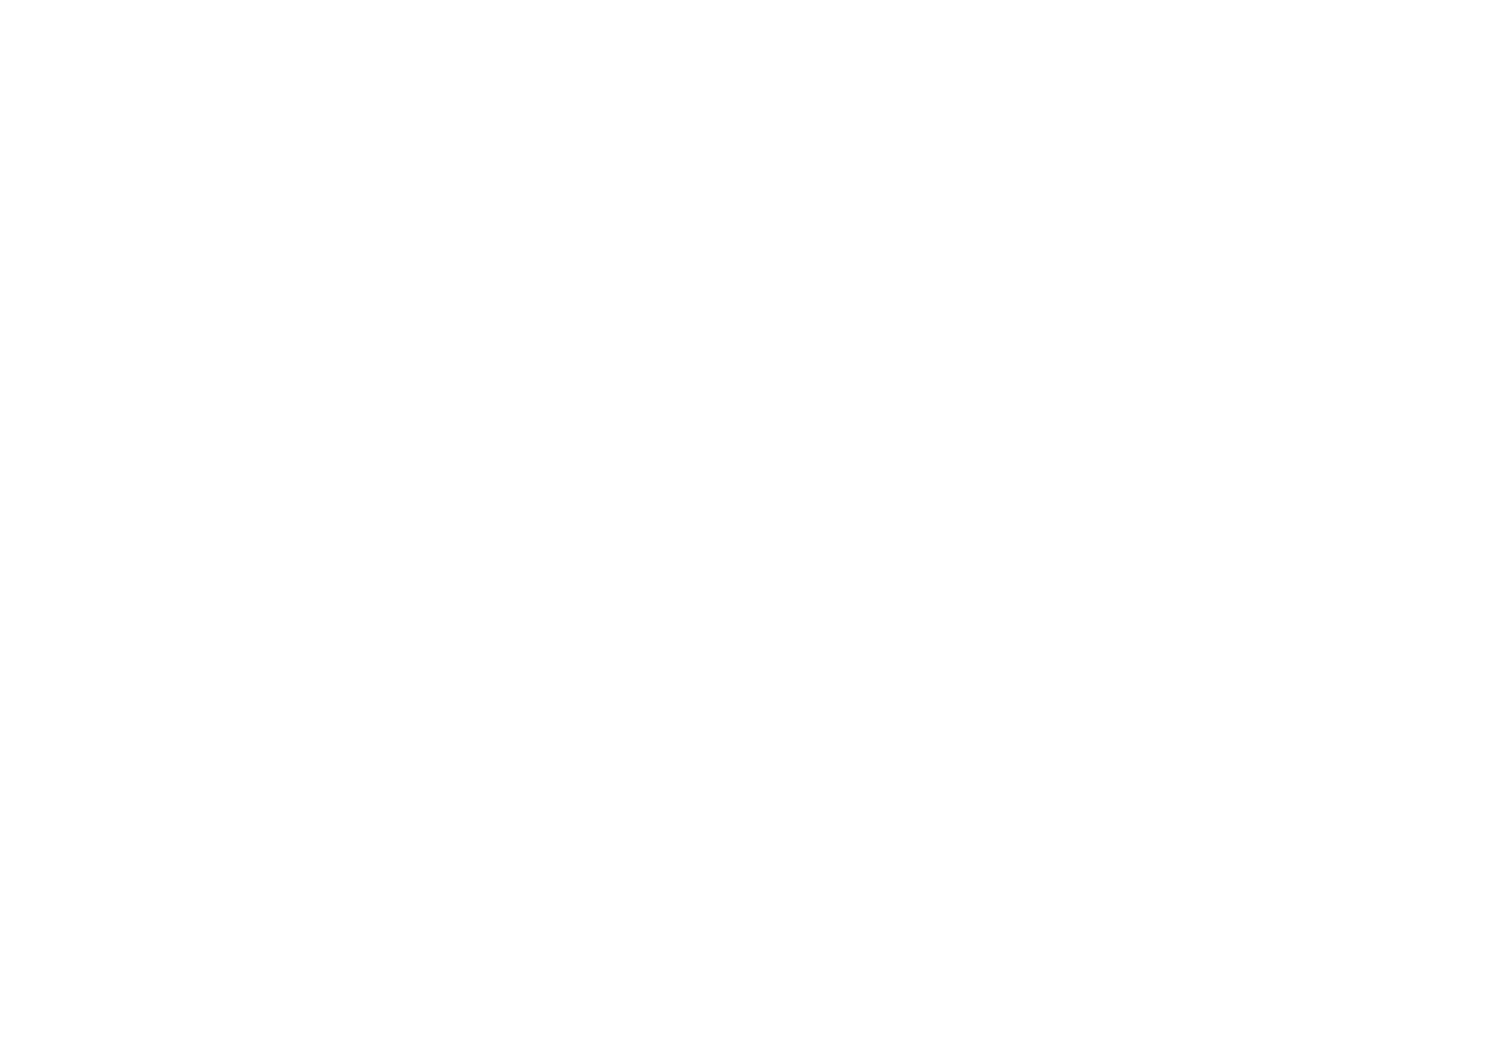 Ross Thompson